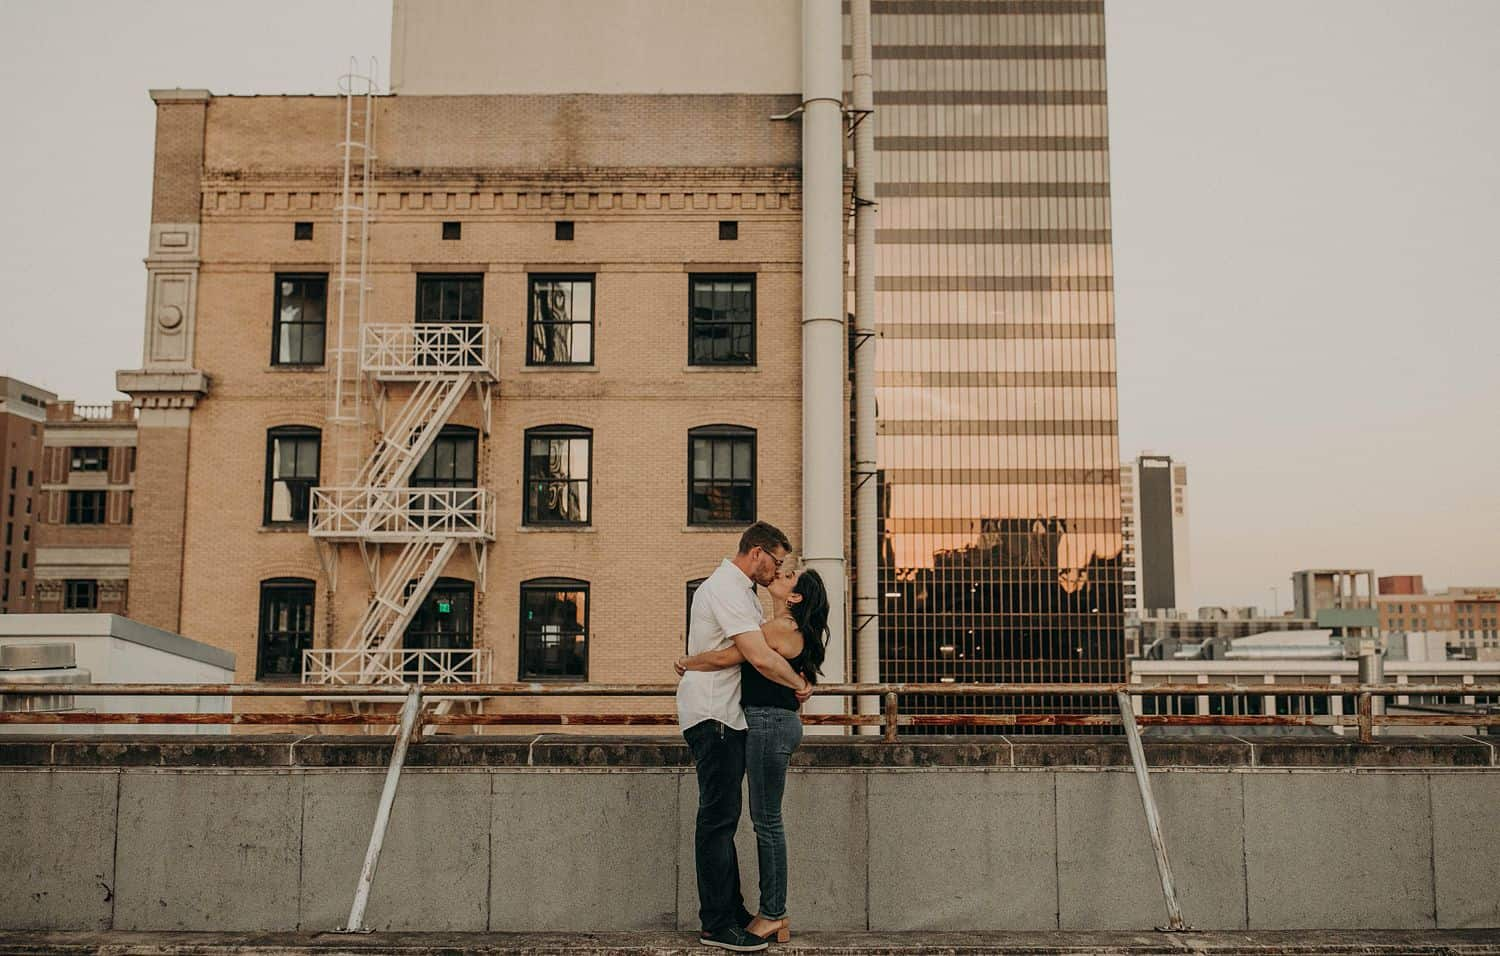 A man and woman hug and kiss on a rooftop overlooking a brick building with a fire escape